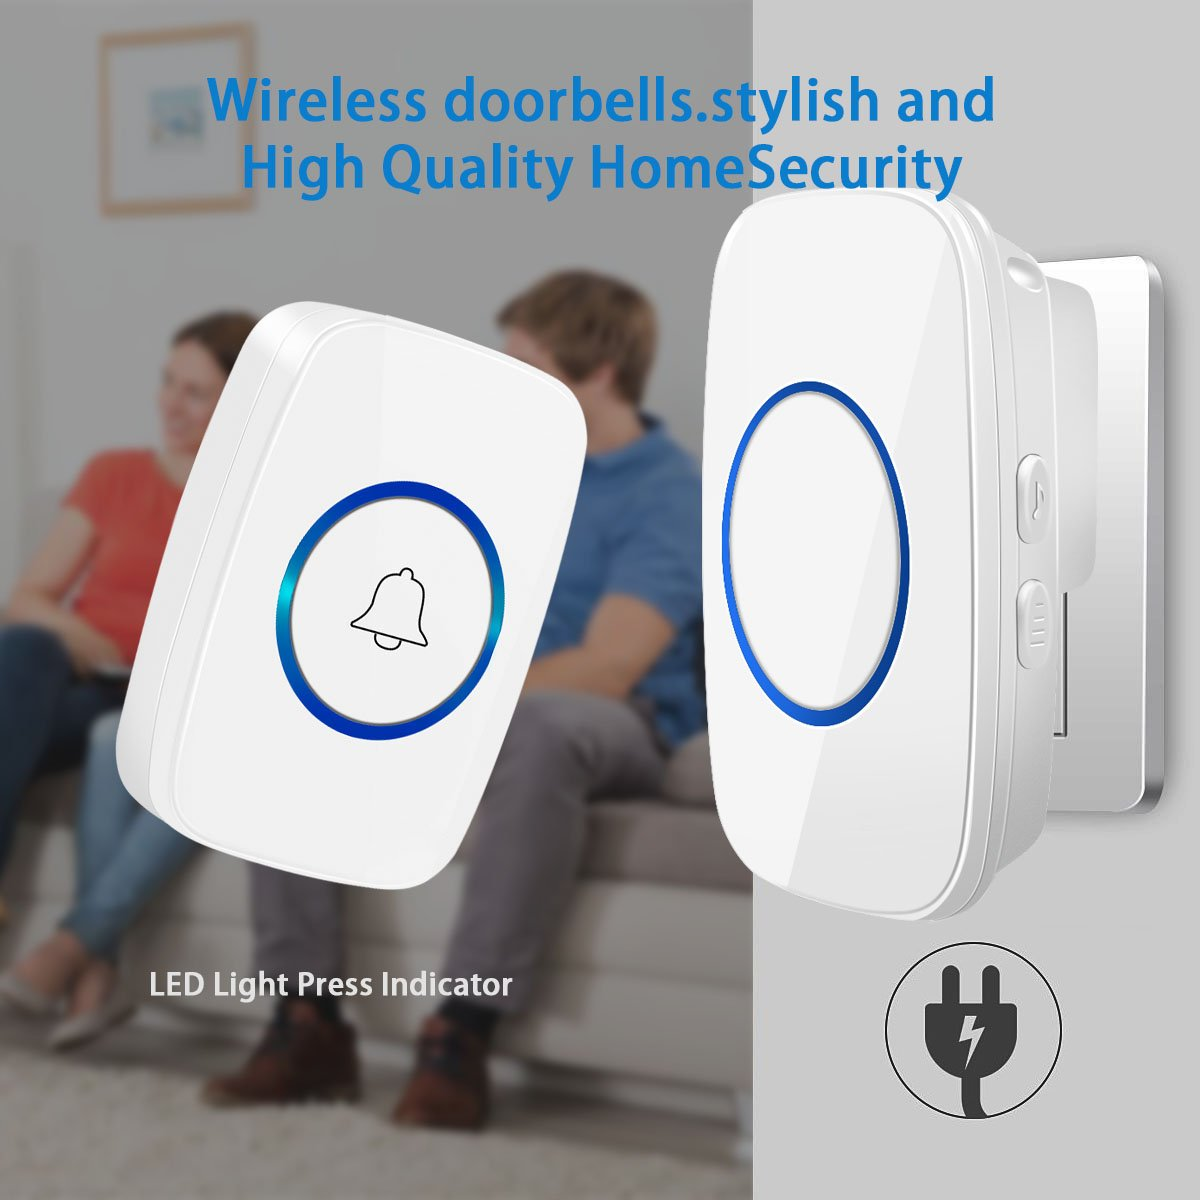 Wireless Doorbells for Home-[Upgraded 2018] Waterproof Doorbells Transmitter for Home and Office at 1300feet Range,52 Doorbell Chimes 5 Volume 1 Transmitter 2 Receivers by MICKYMIN (Image #7)